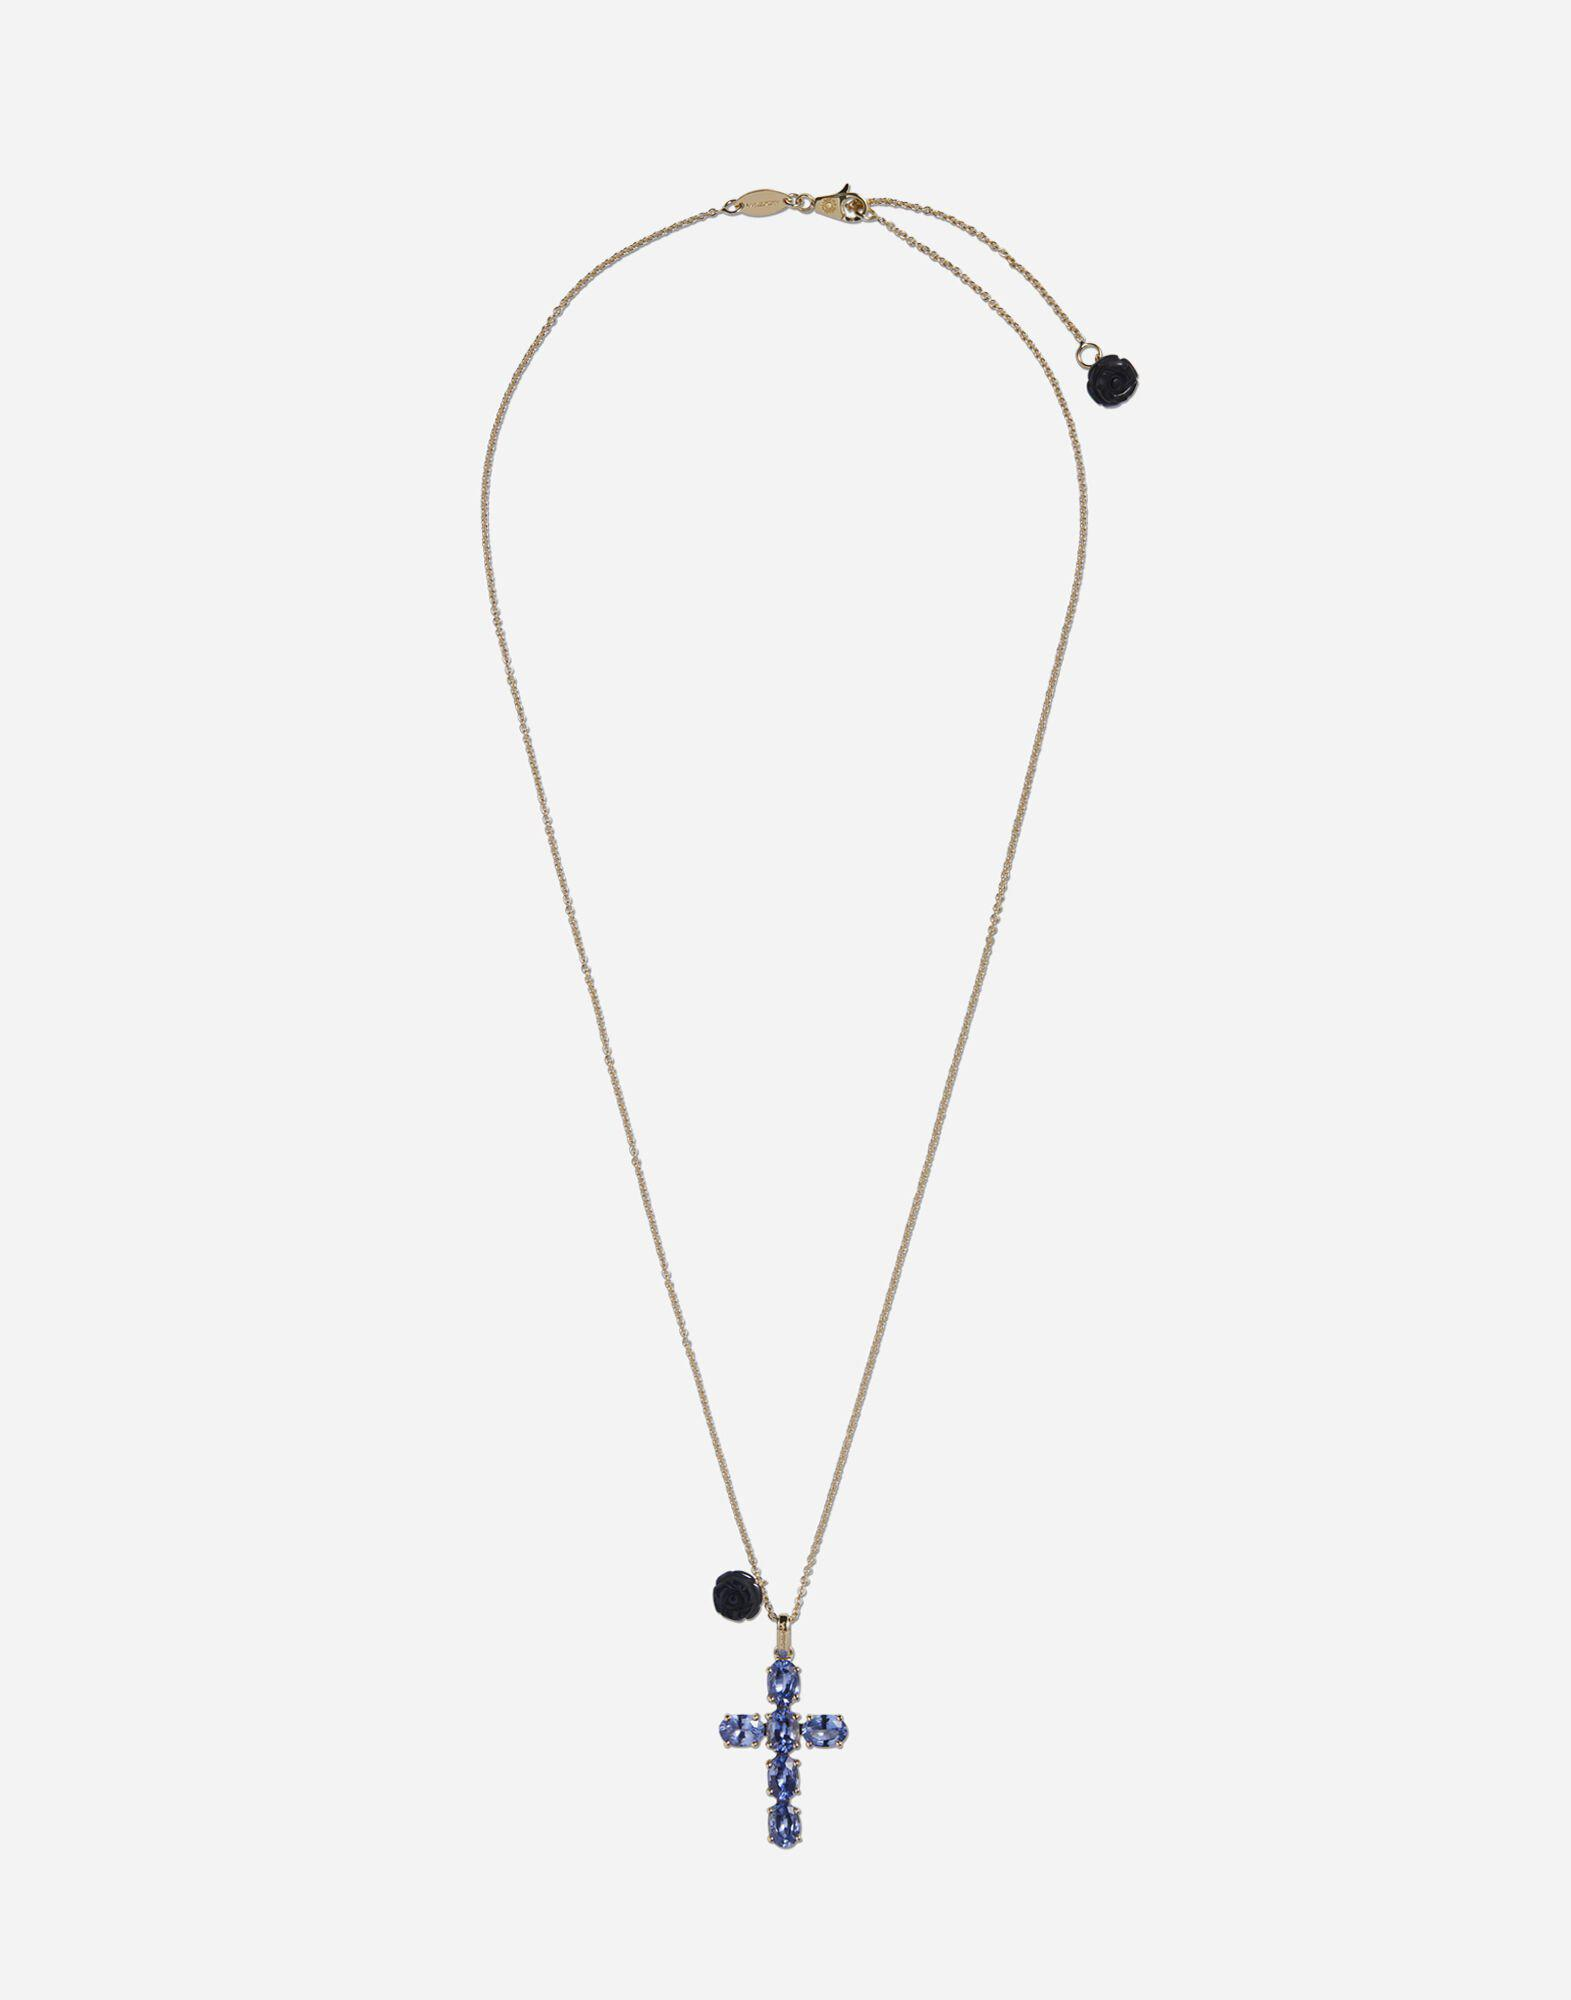 Family cross and rose pendats on yellow gold chain